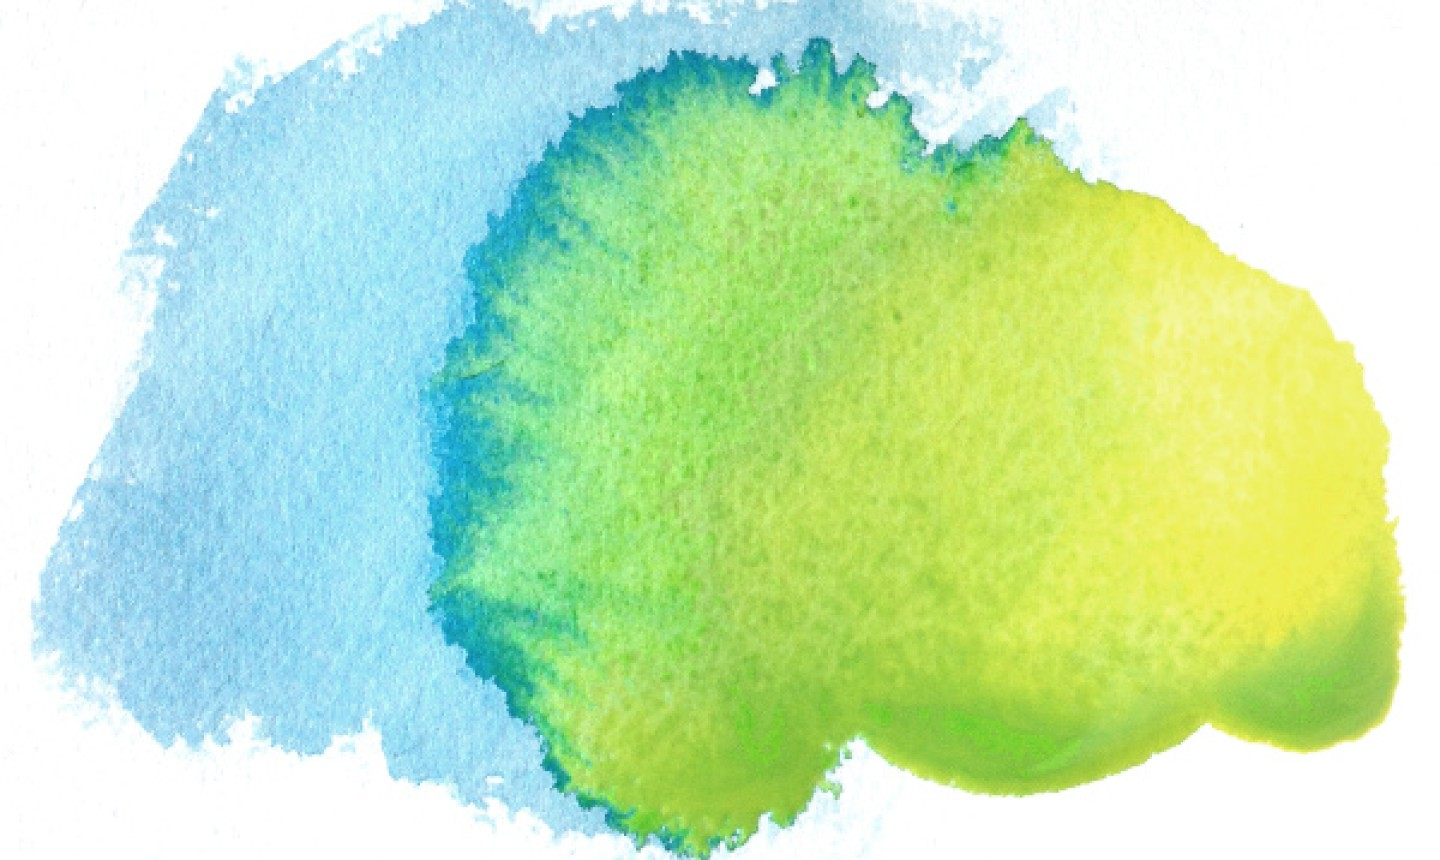 Blue and green watercolor spot